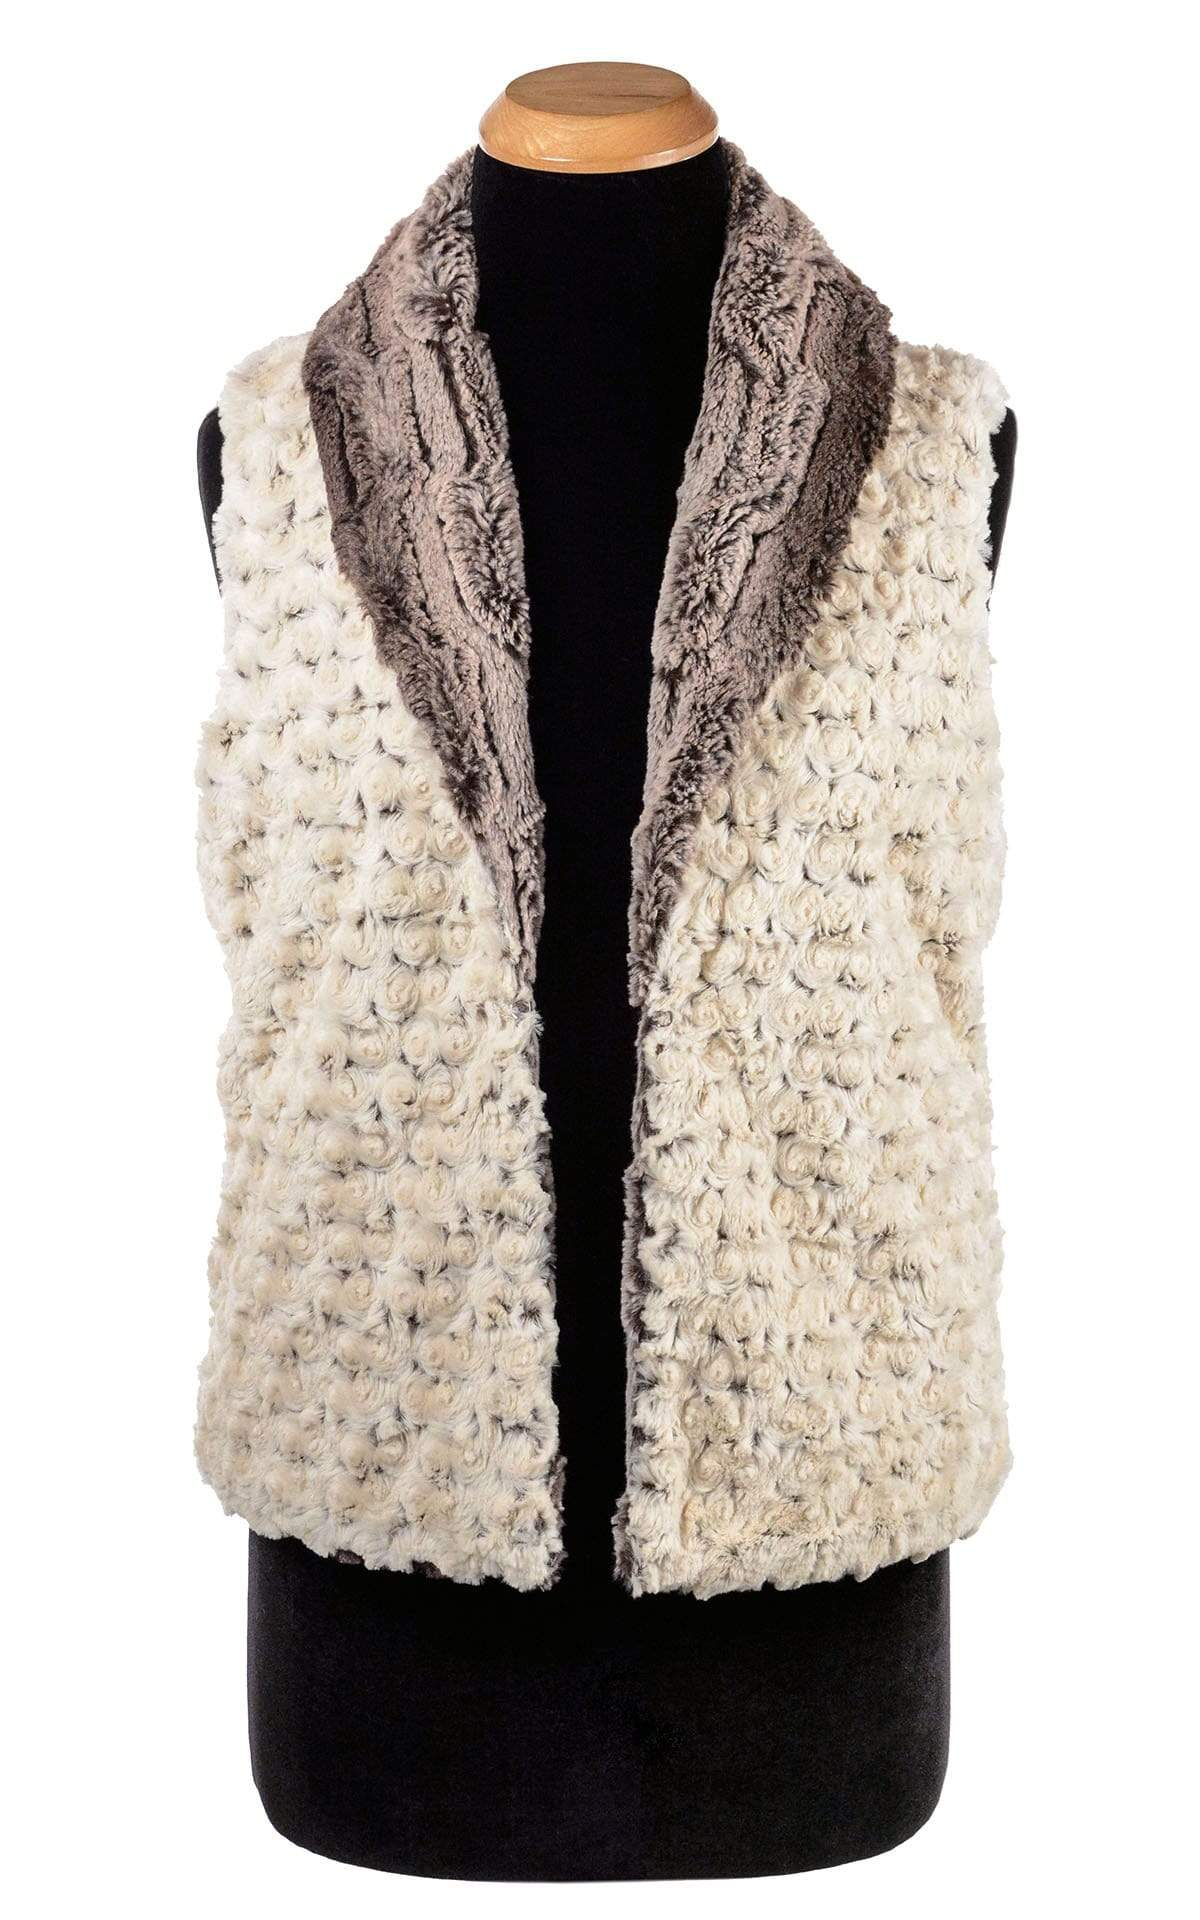 Shawl Collar Vest - Luxury Faux Fur in Chinchilla Brown with Rosebud Faux Fur in Brown (Only One Small Left)